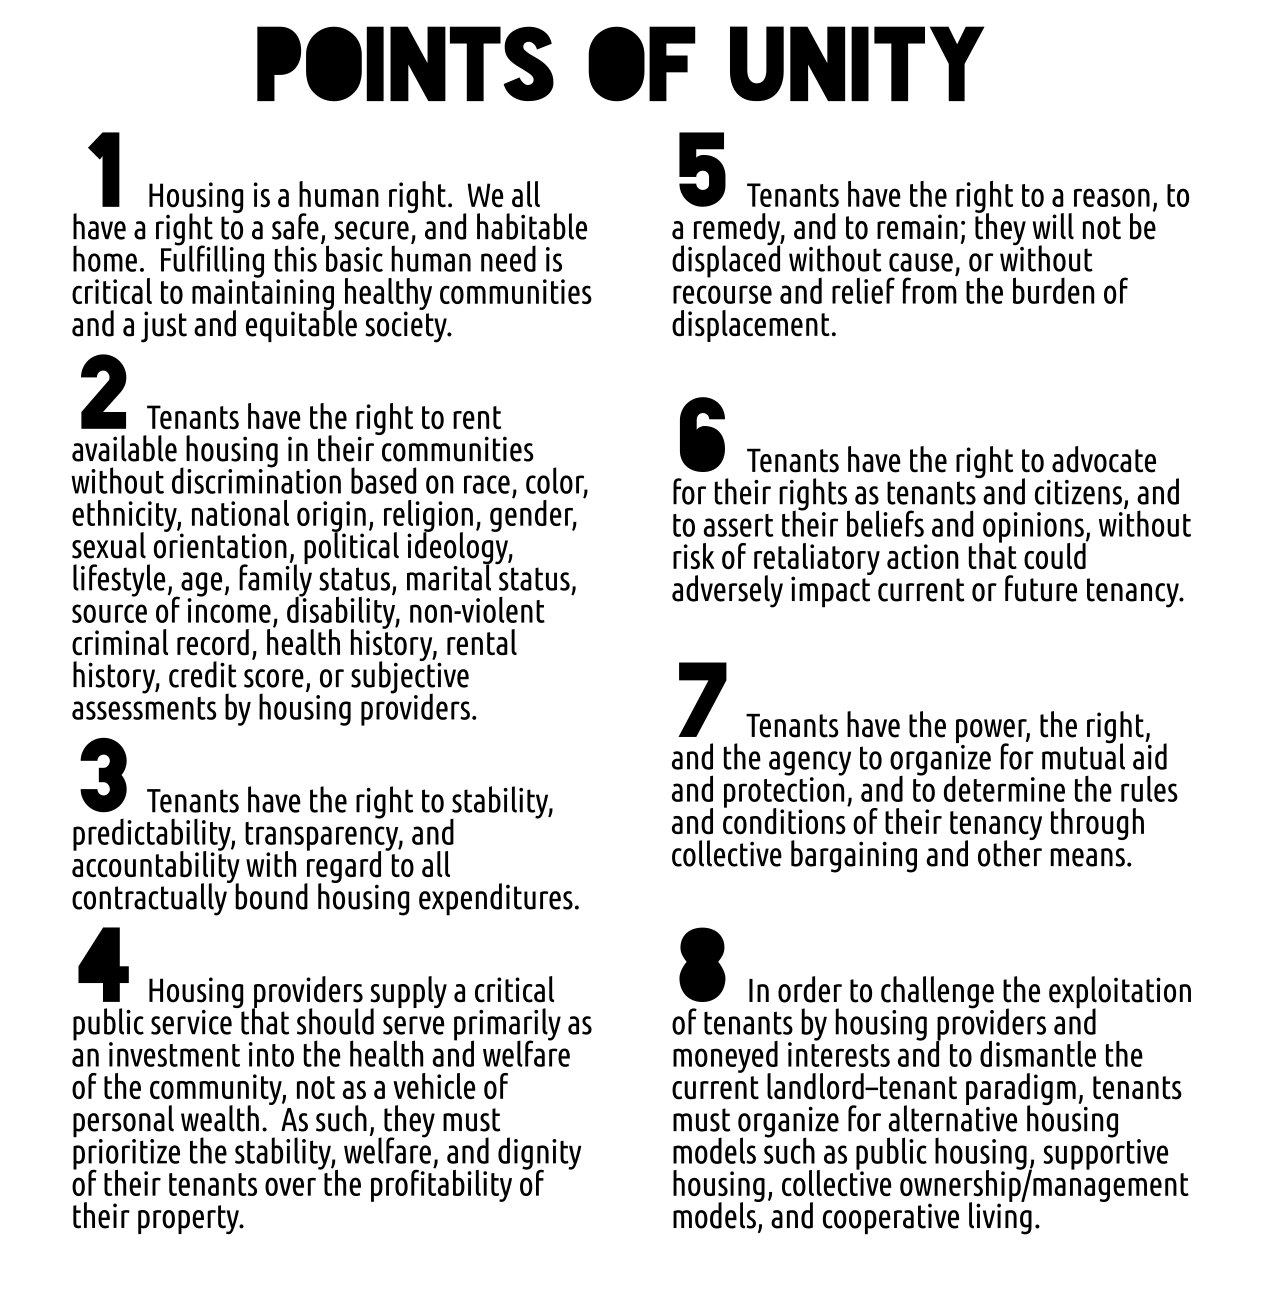 PointsofUnity.png